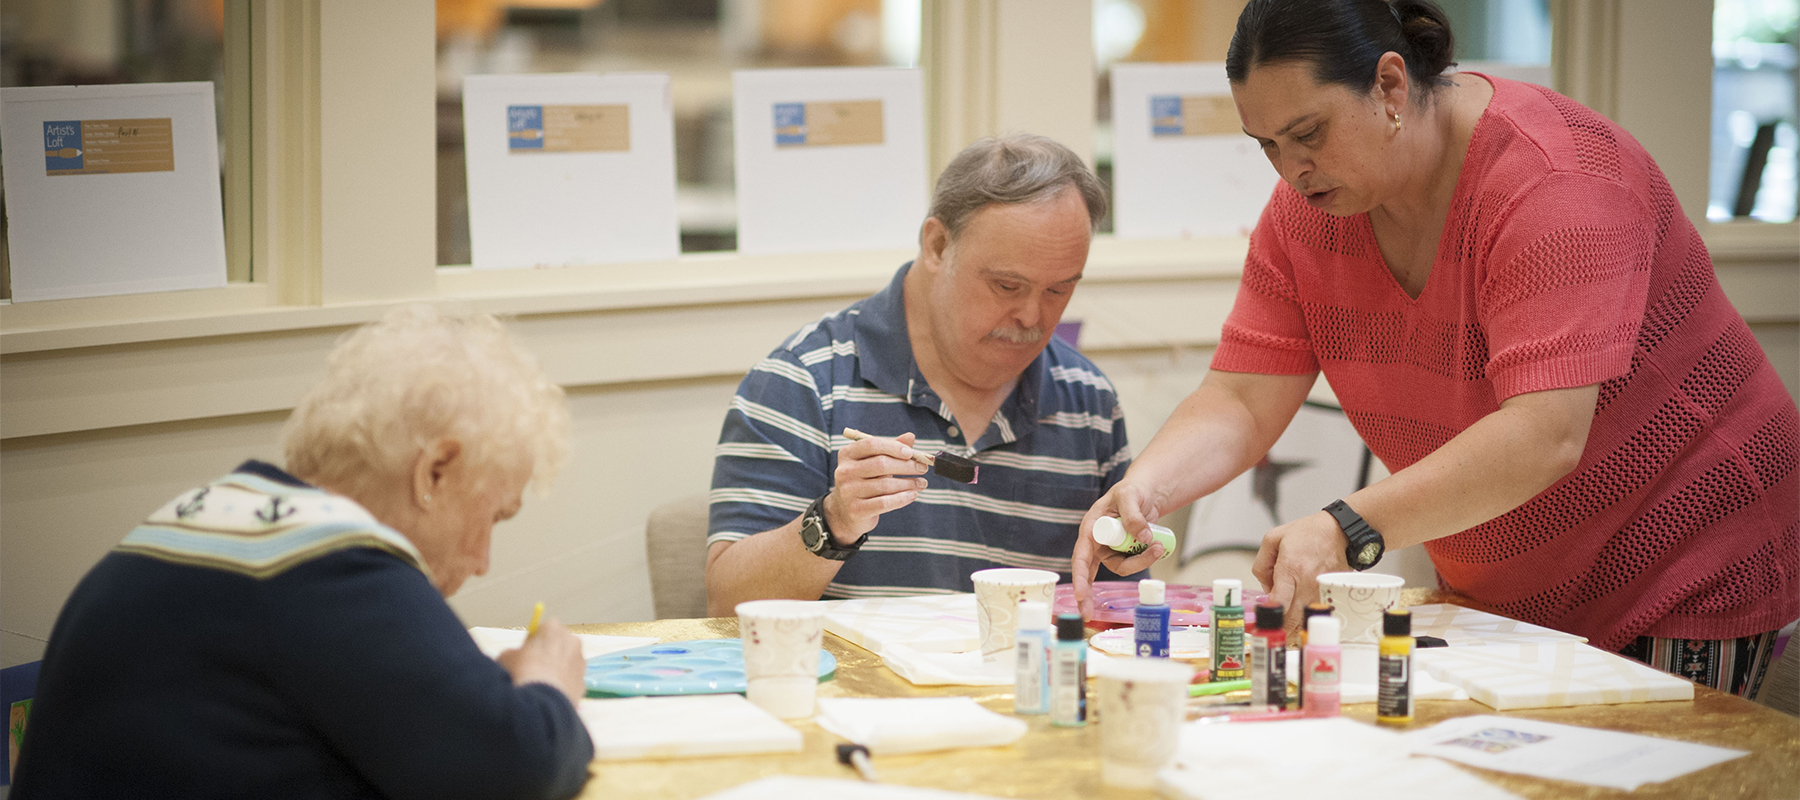 ... two older adults painting at a table while a woman offers assistance